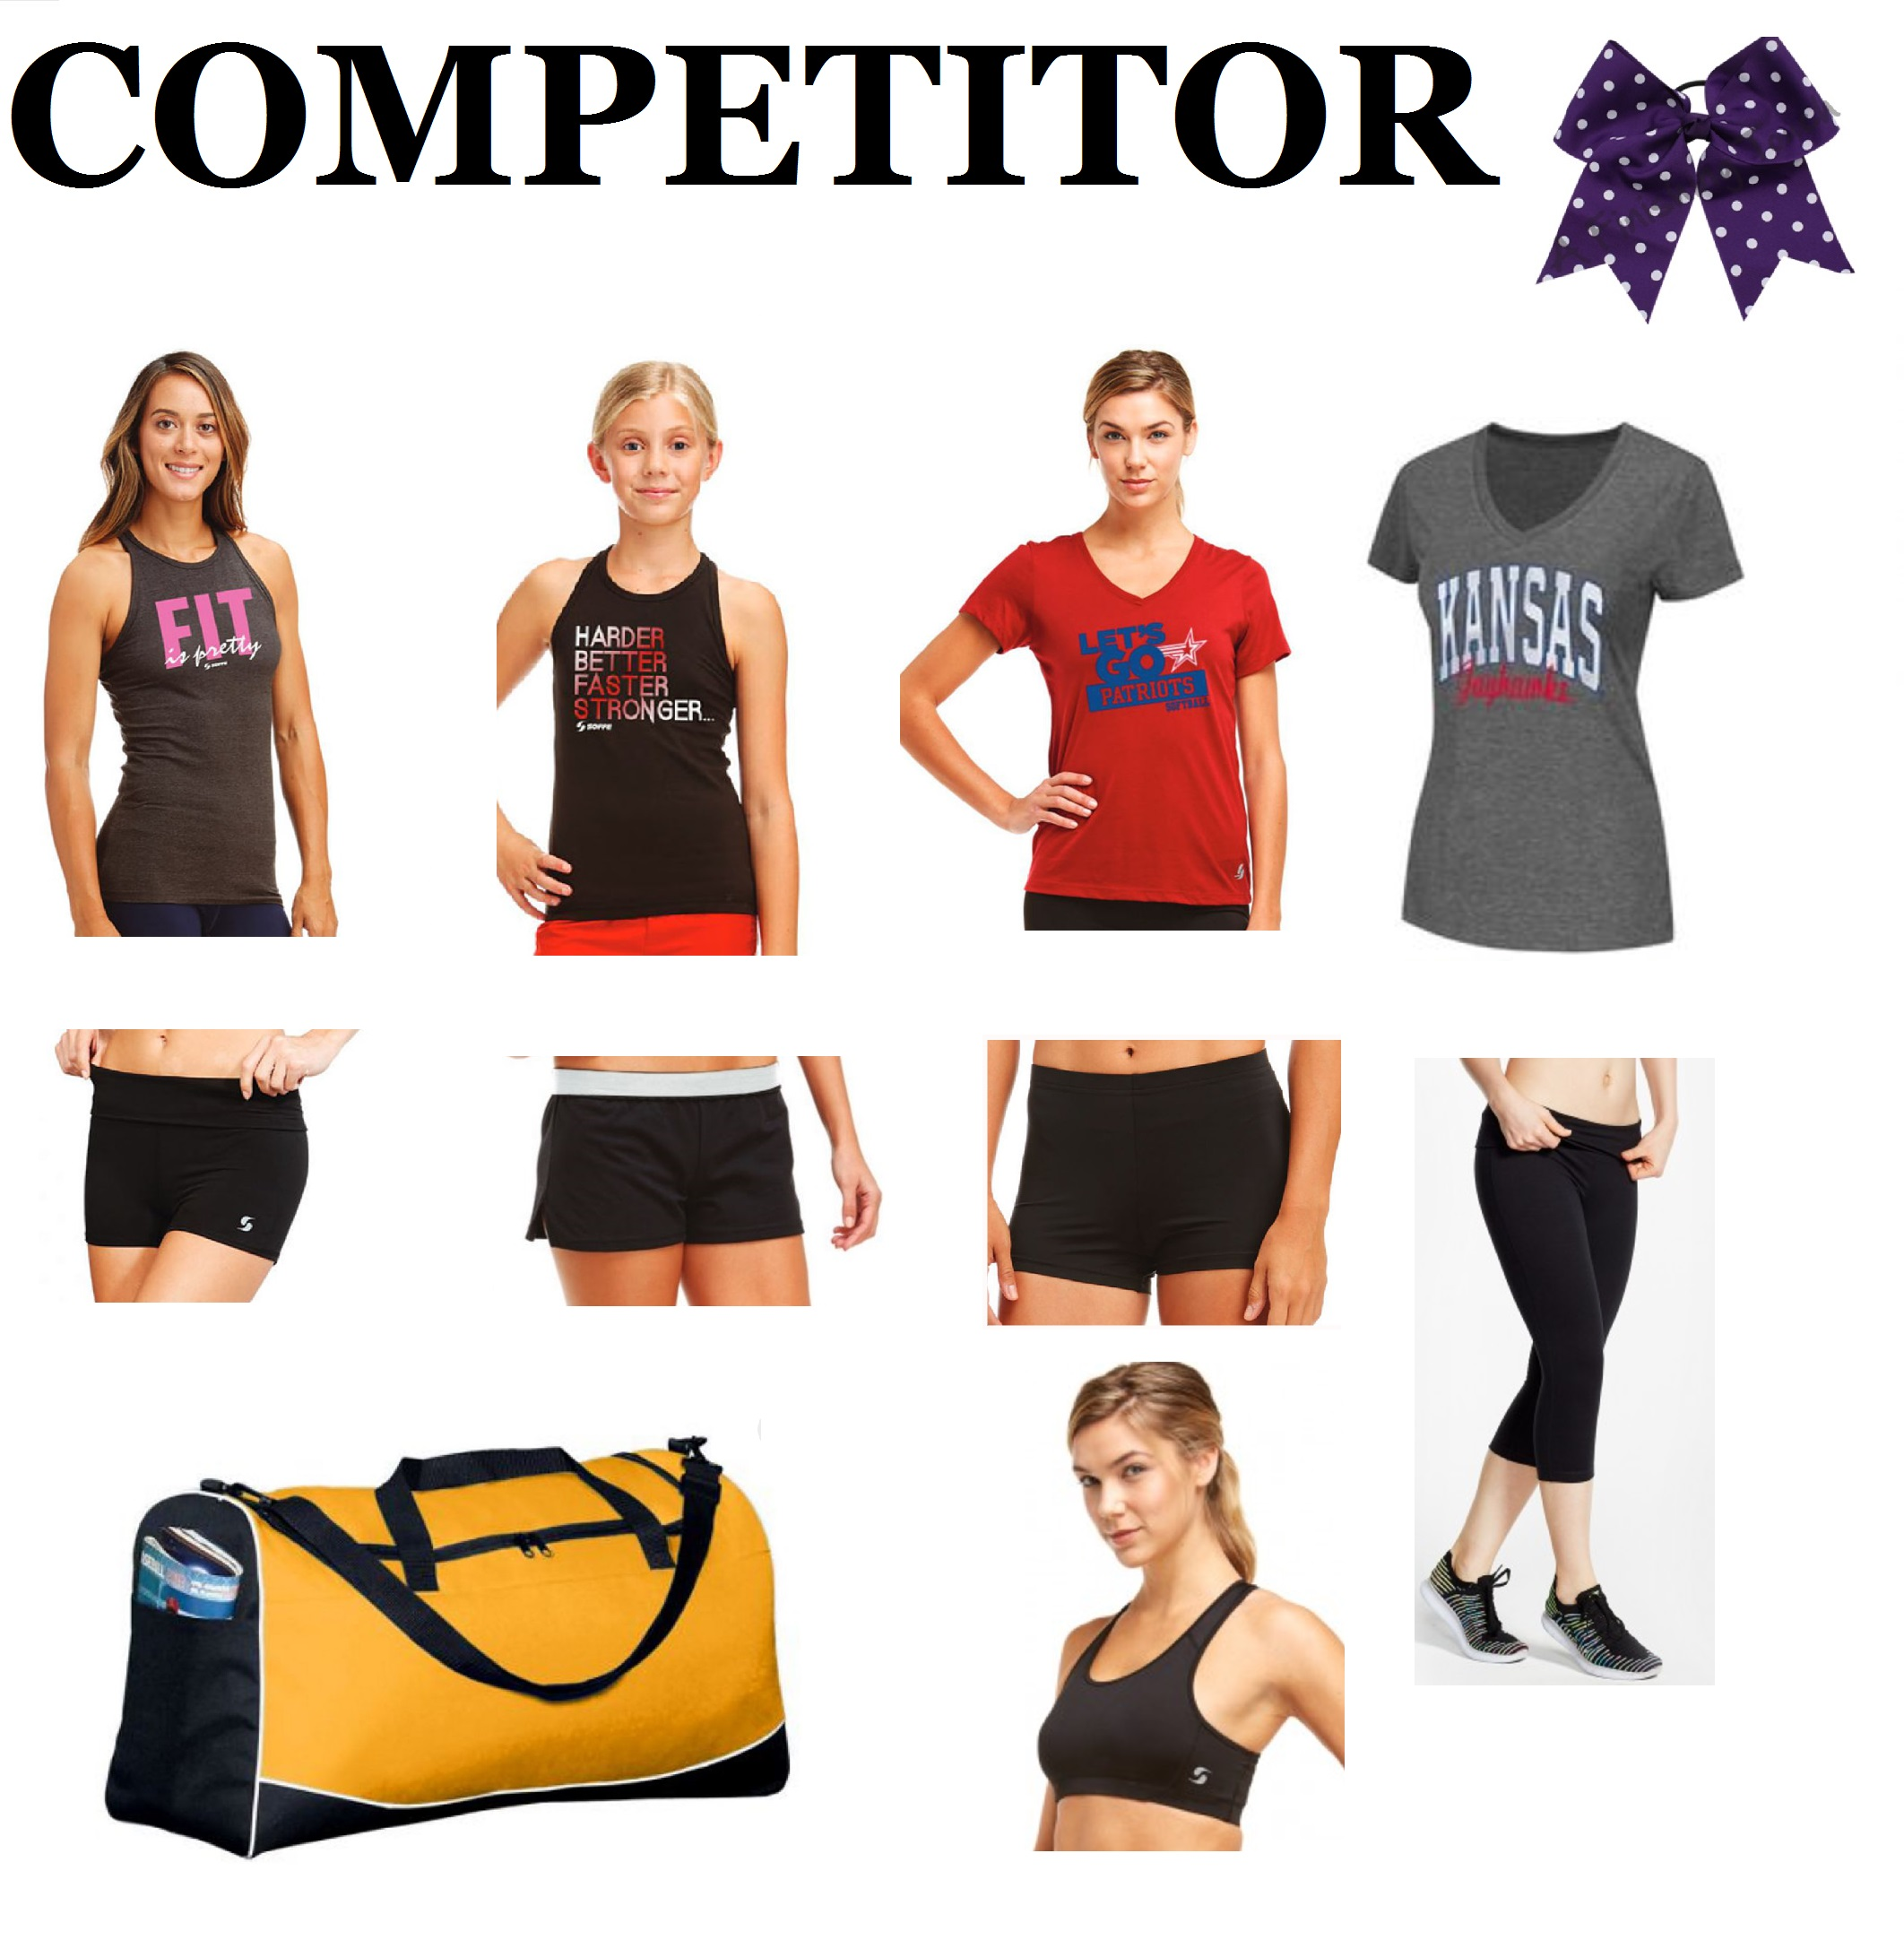 Competitor Cheer Camp/ Practice Pack